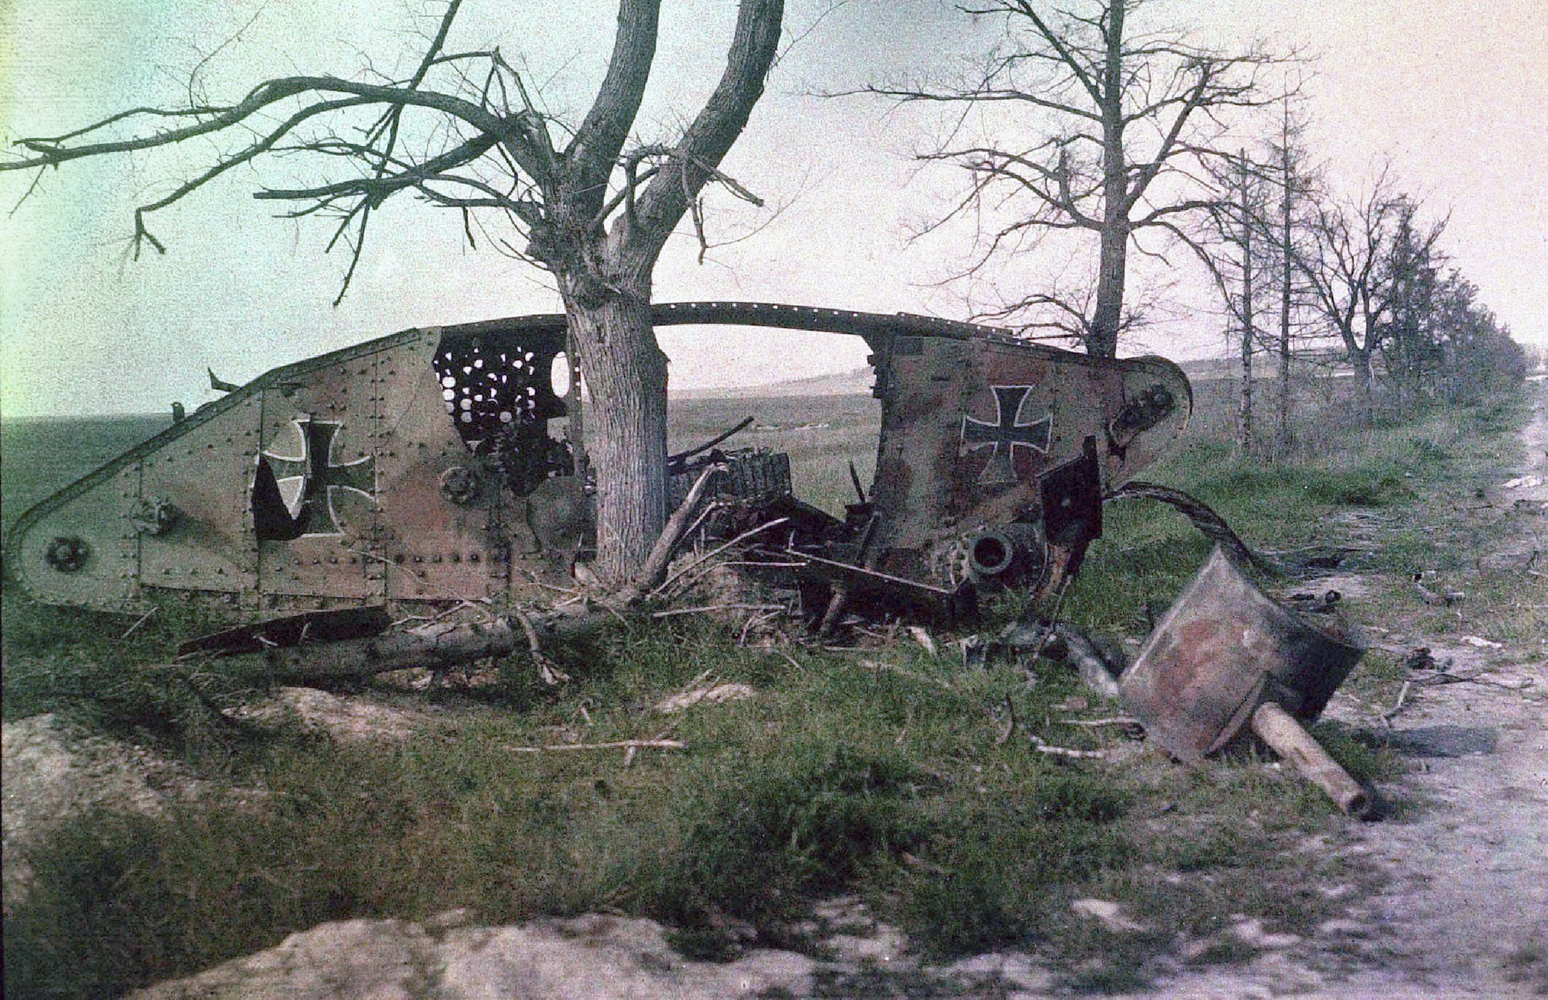 The wreckage of a British MarkIV or MarkV tank with German markings 1918